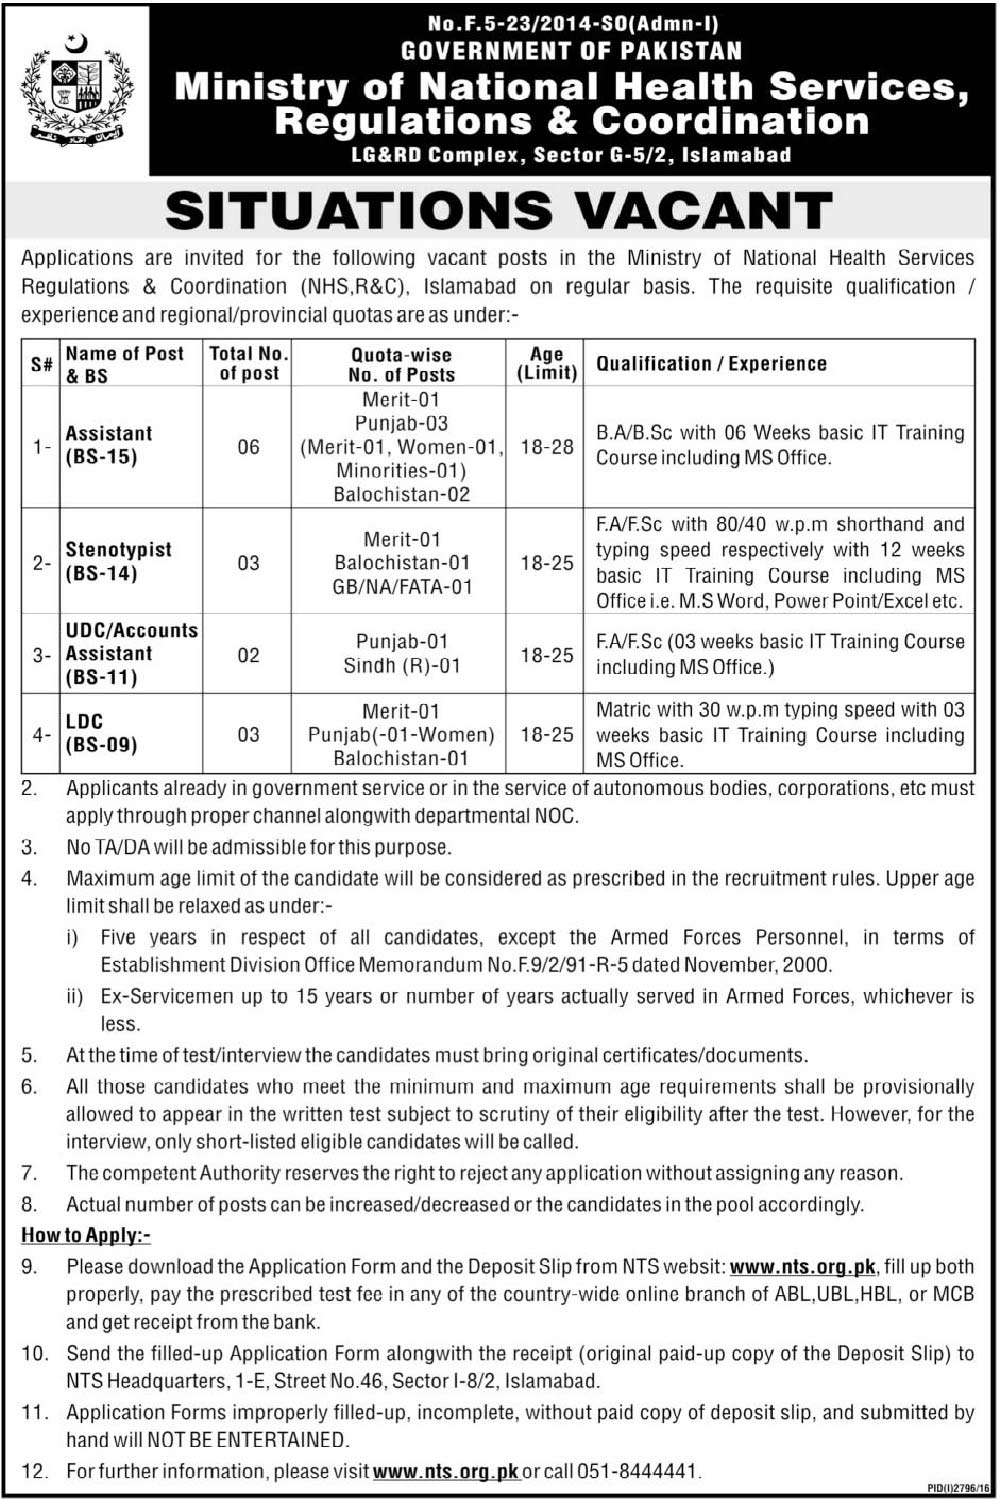 Ministry of National Health Services Regulations and Coordination Jobs